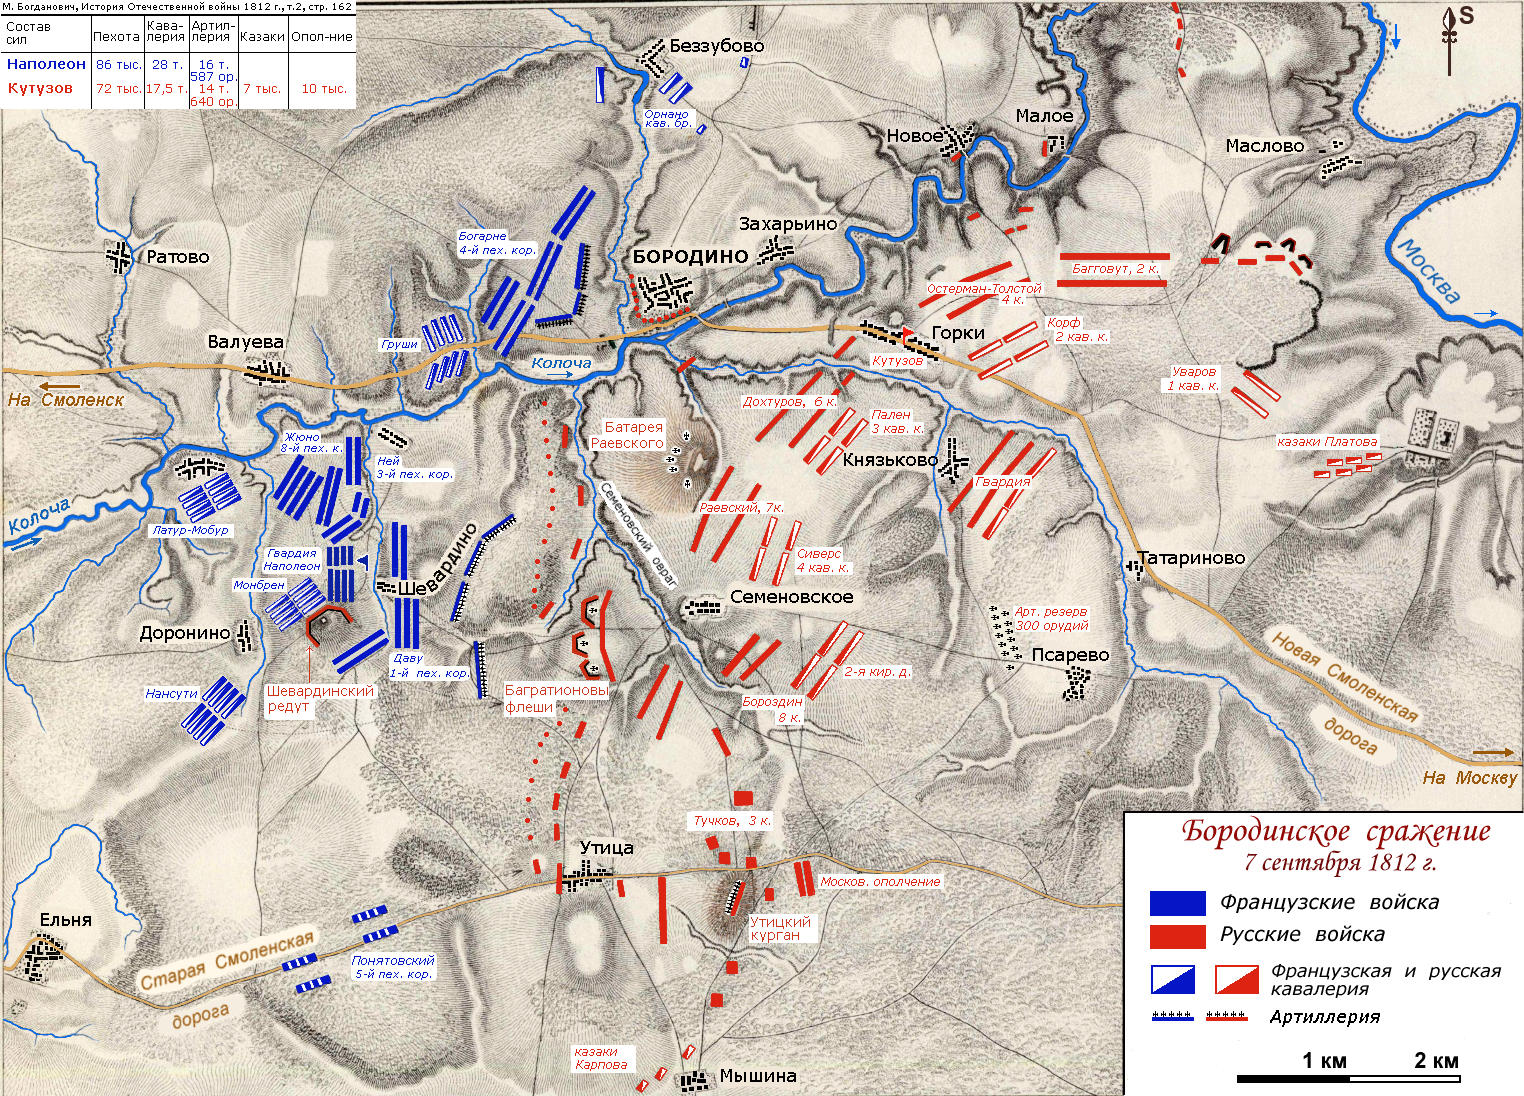 Battle_of_Borodino_1812_map.